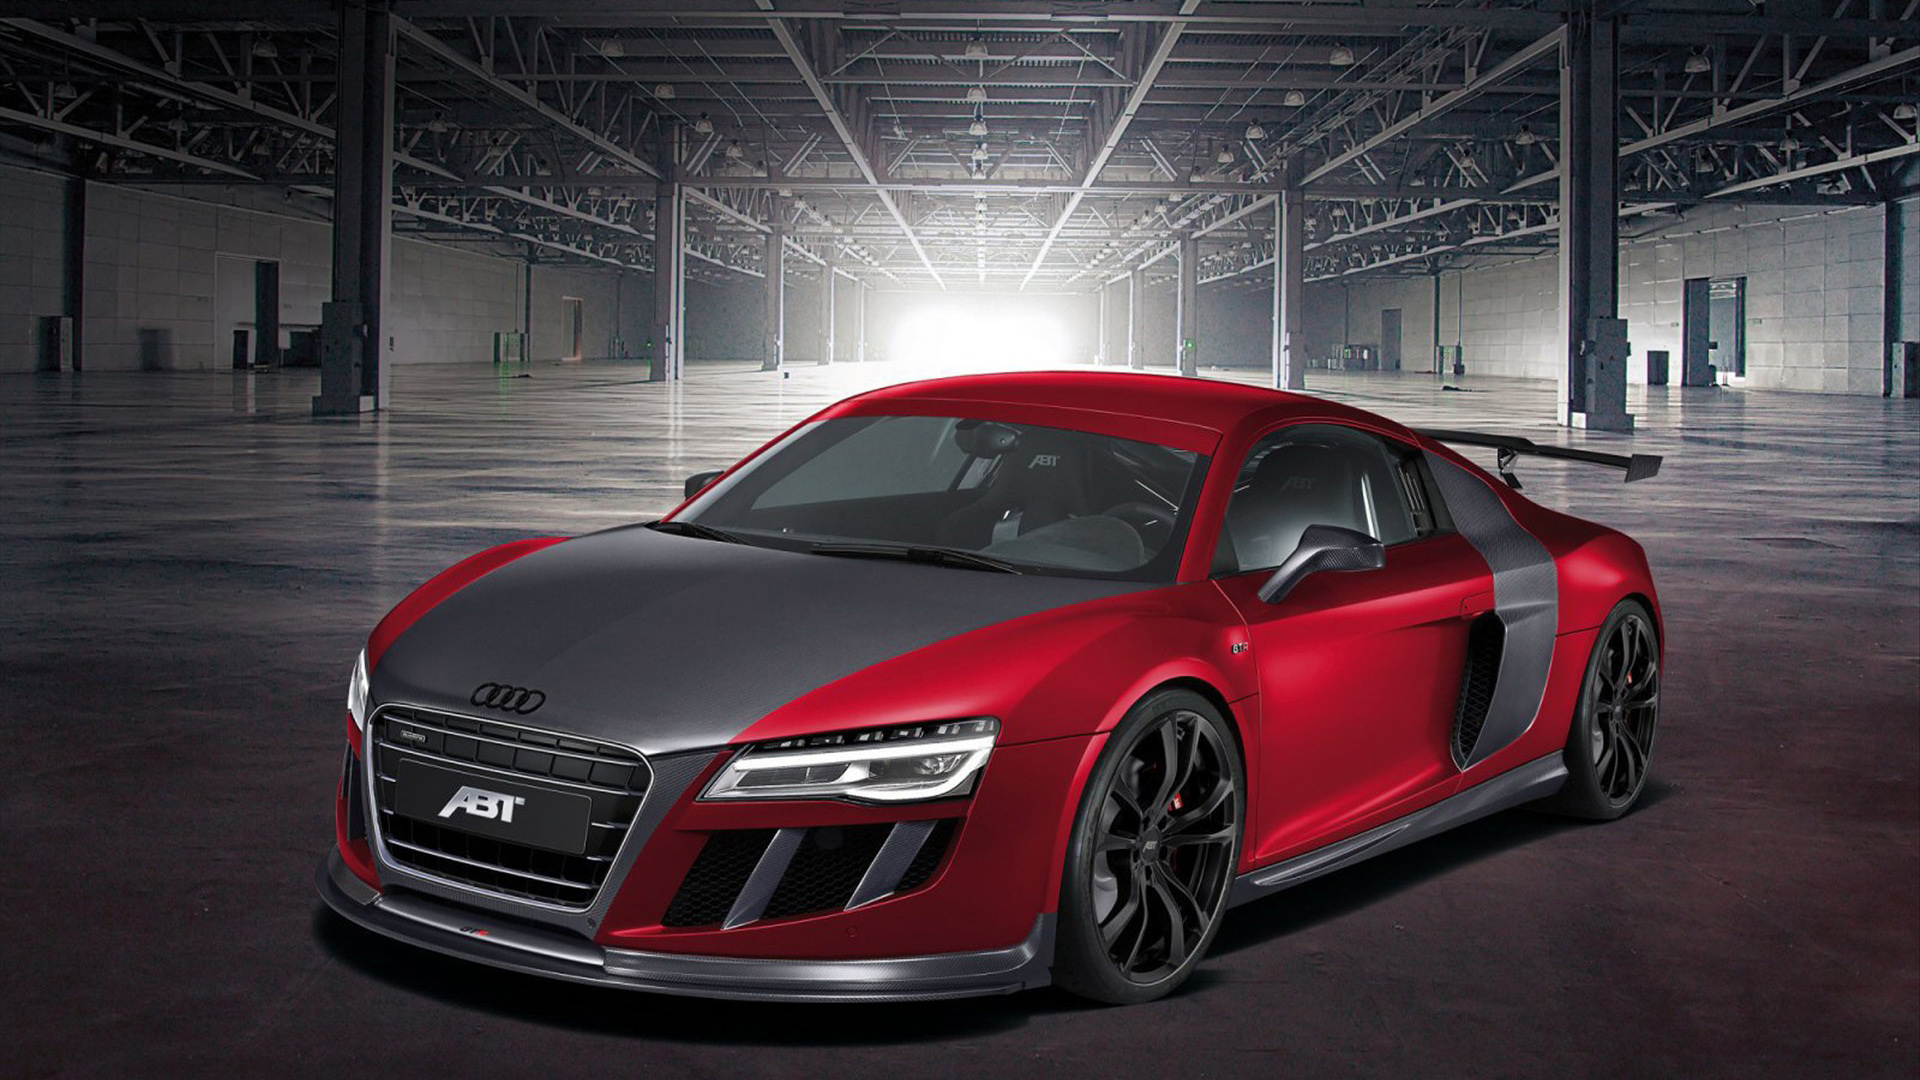 ABT Audi R8 GTR 2013 Wallpaper